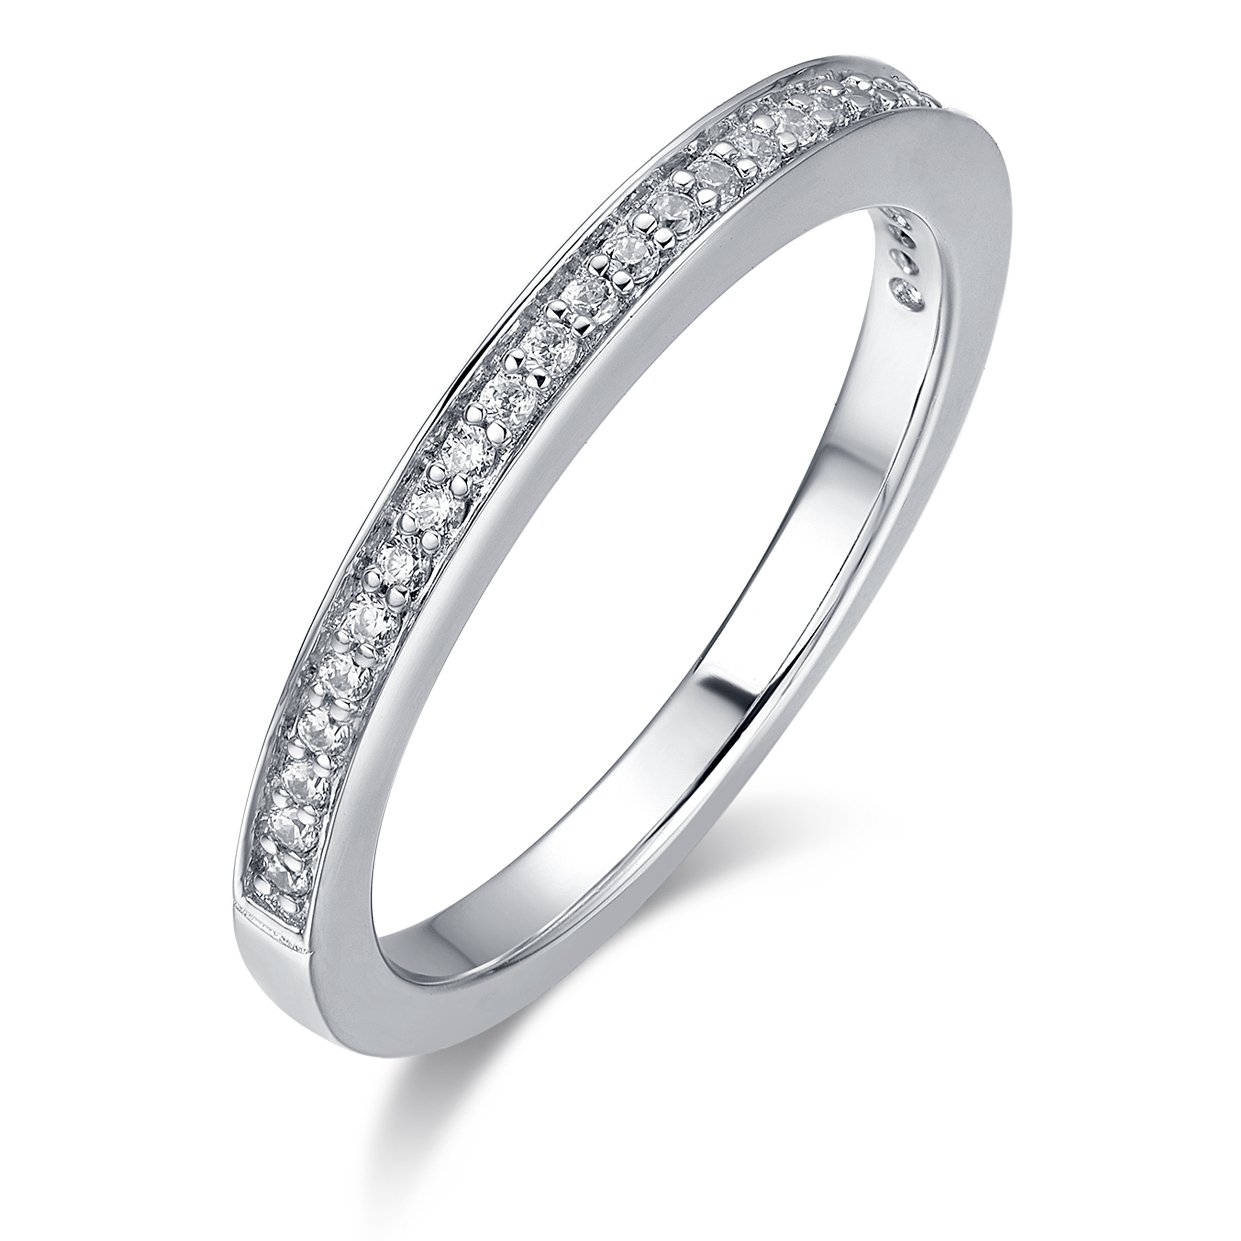 2.0mm Rhodium Plated Sterling Silver Micropave Cubic Zirconia CZ Half Eternity Wedding Ring (9)